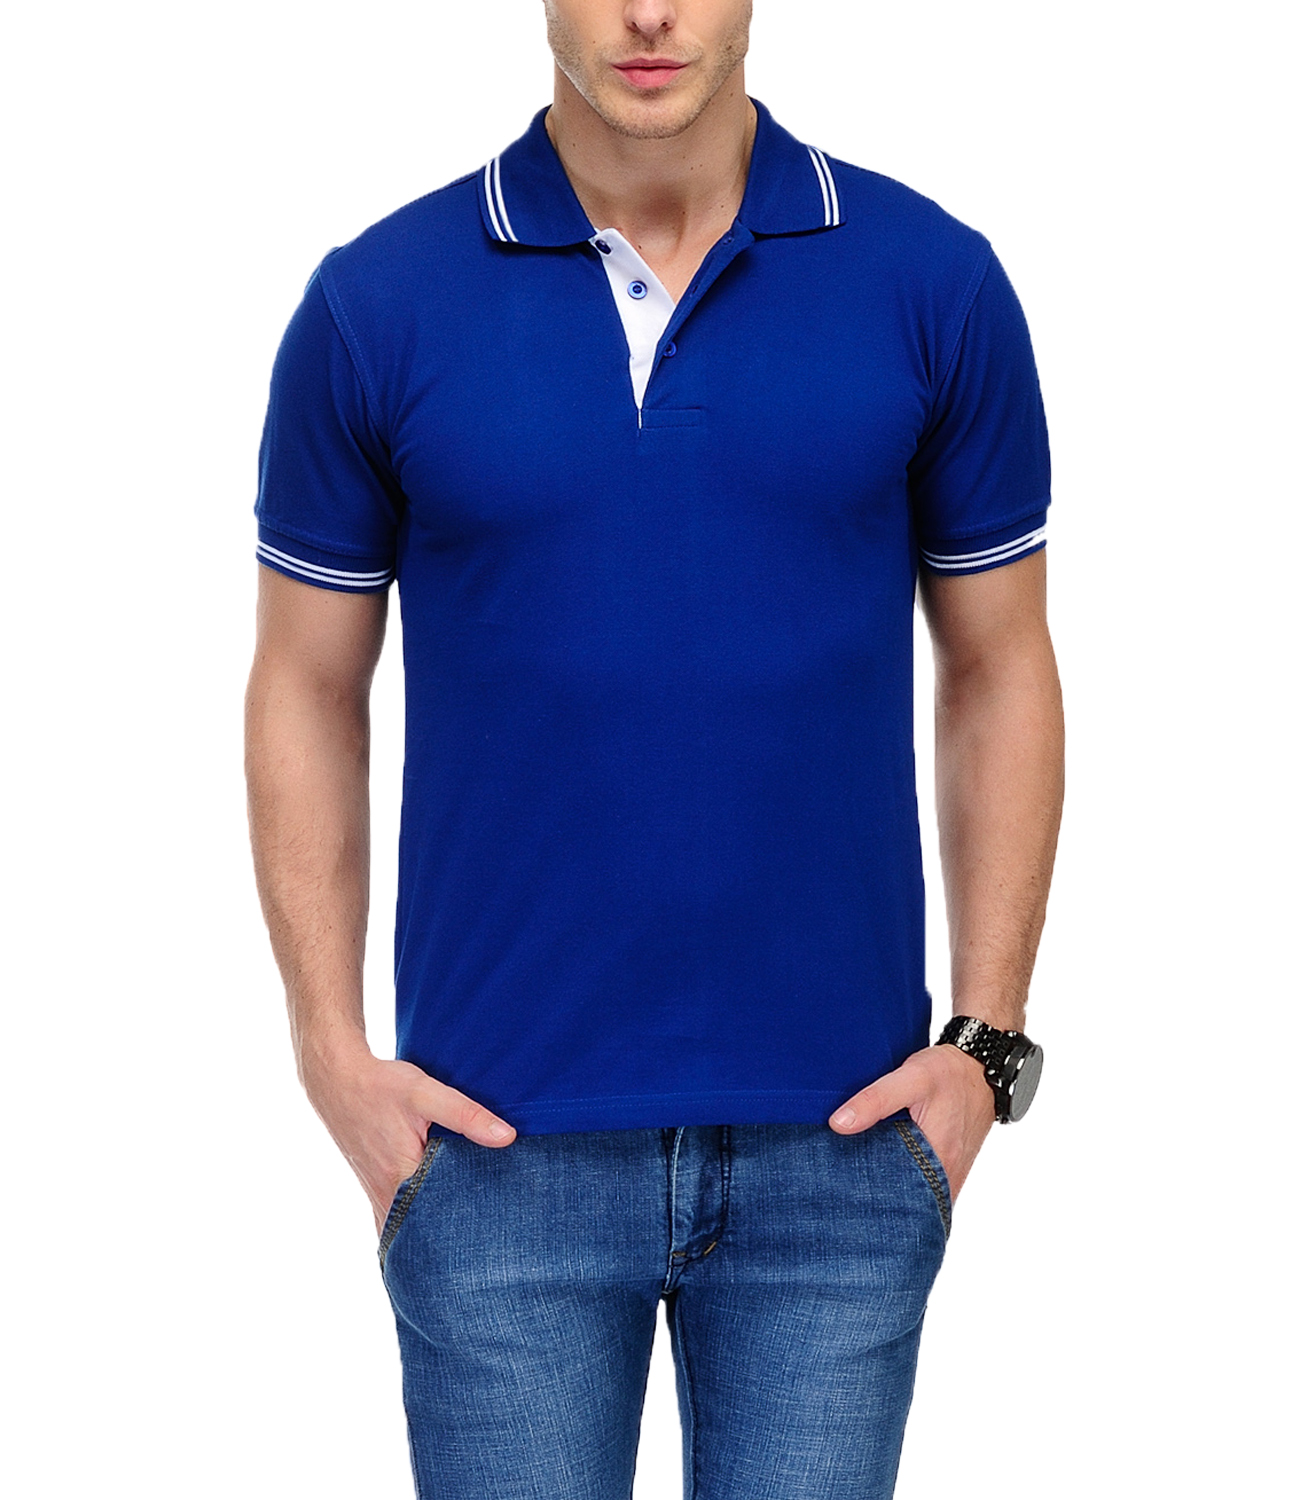 AWG Men's  Blue Recycled Organic Polo T-shirt